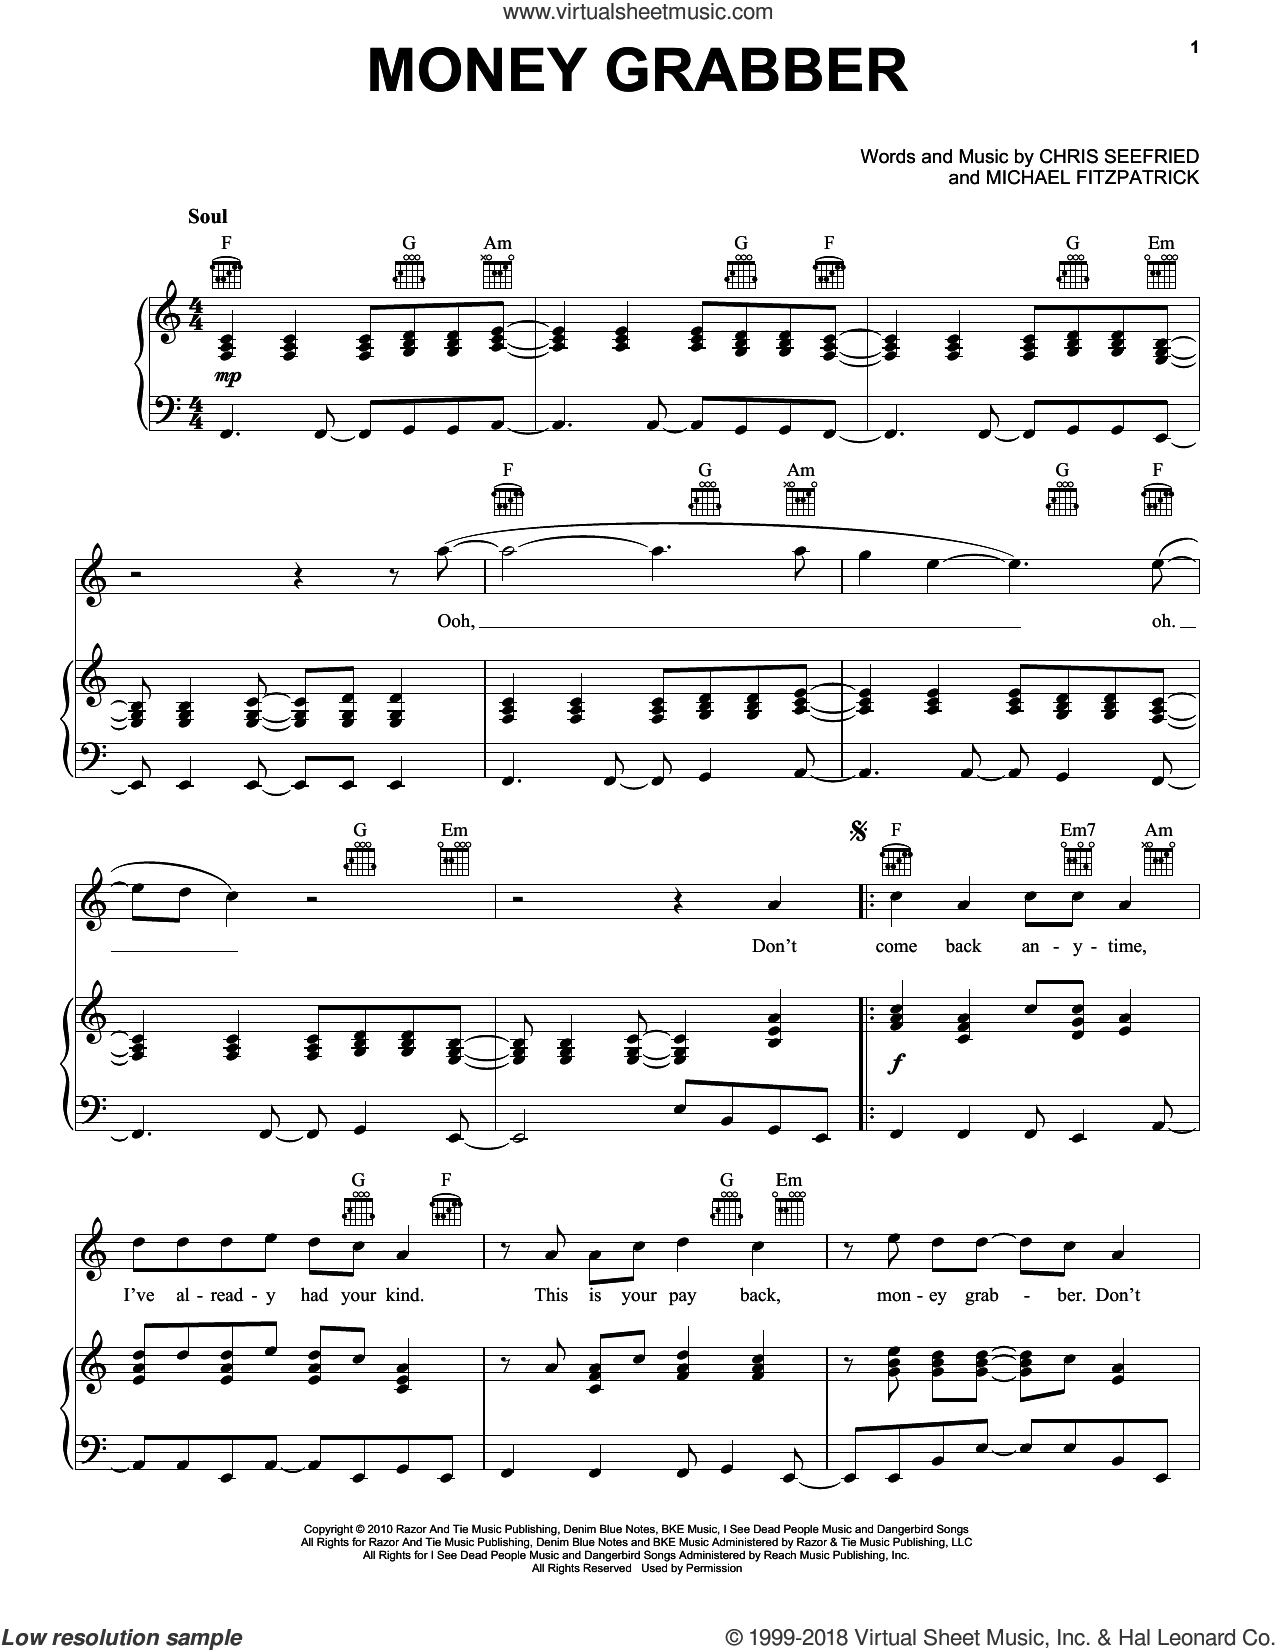 Money Grabber sheet music for voice, piano or guitar by Fitz And The Tantrums, Chris Seefried and Michael Fitzpatrick, intermediate skill level